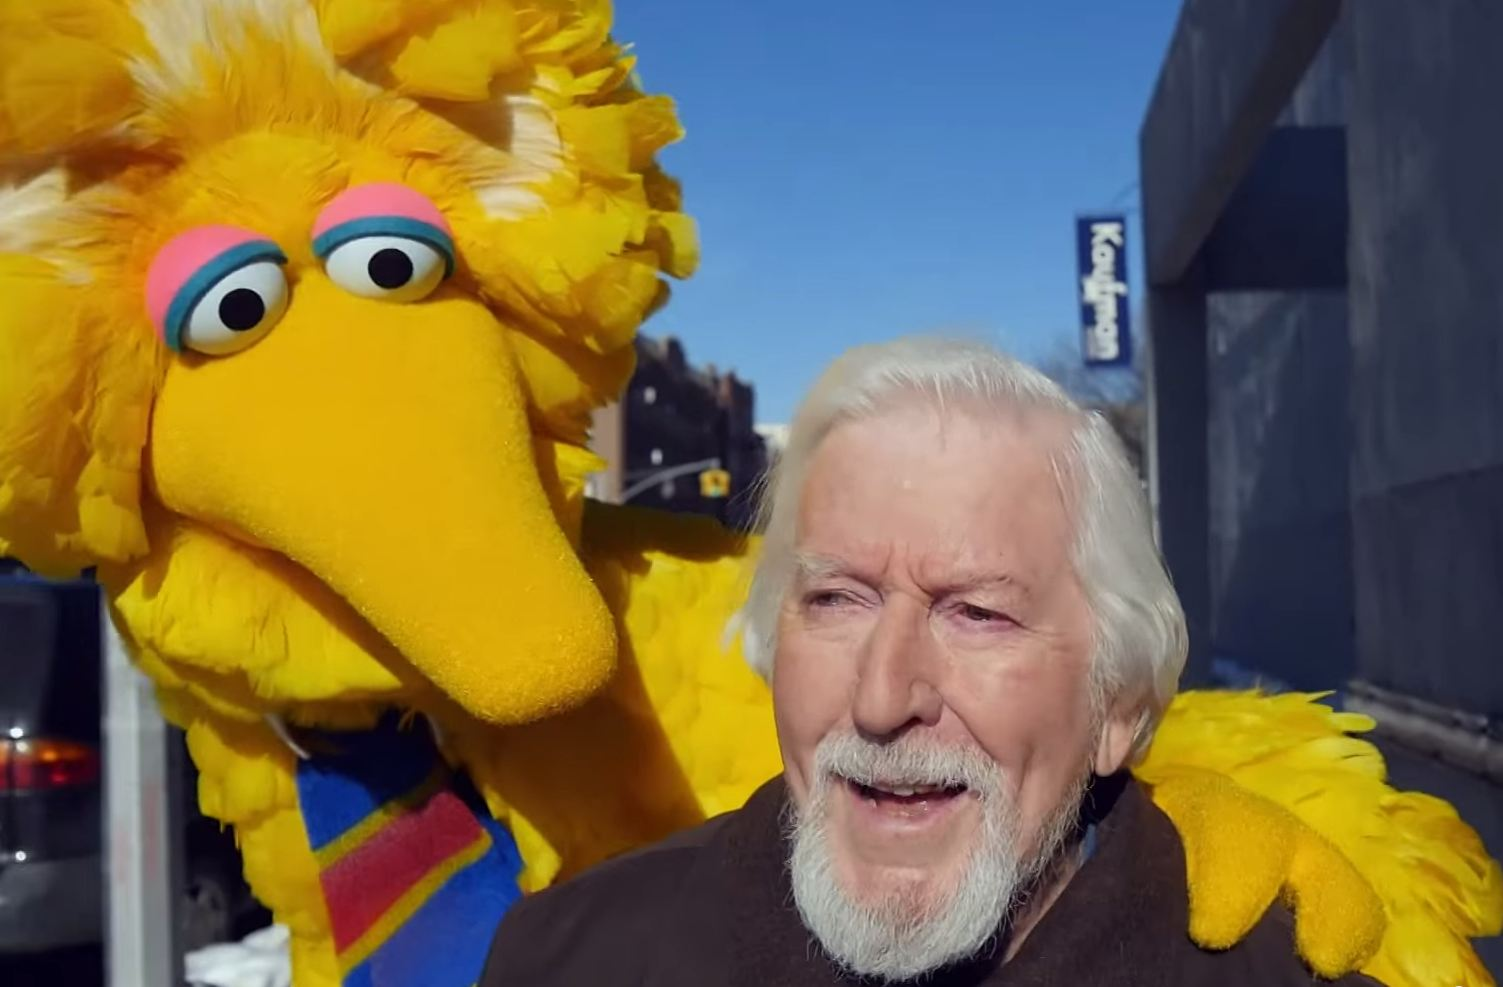 Big Bird bloke spoofs Michael Keaton's Birdman